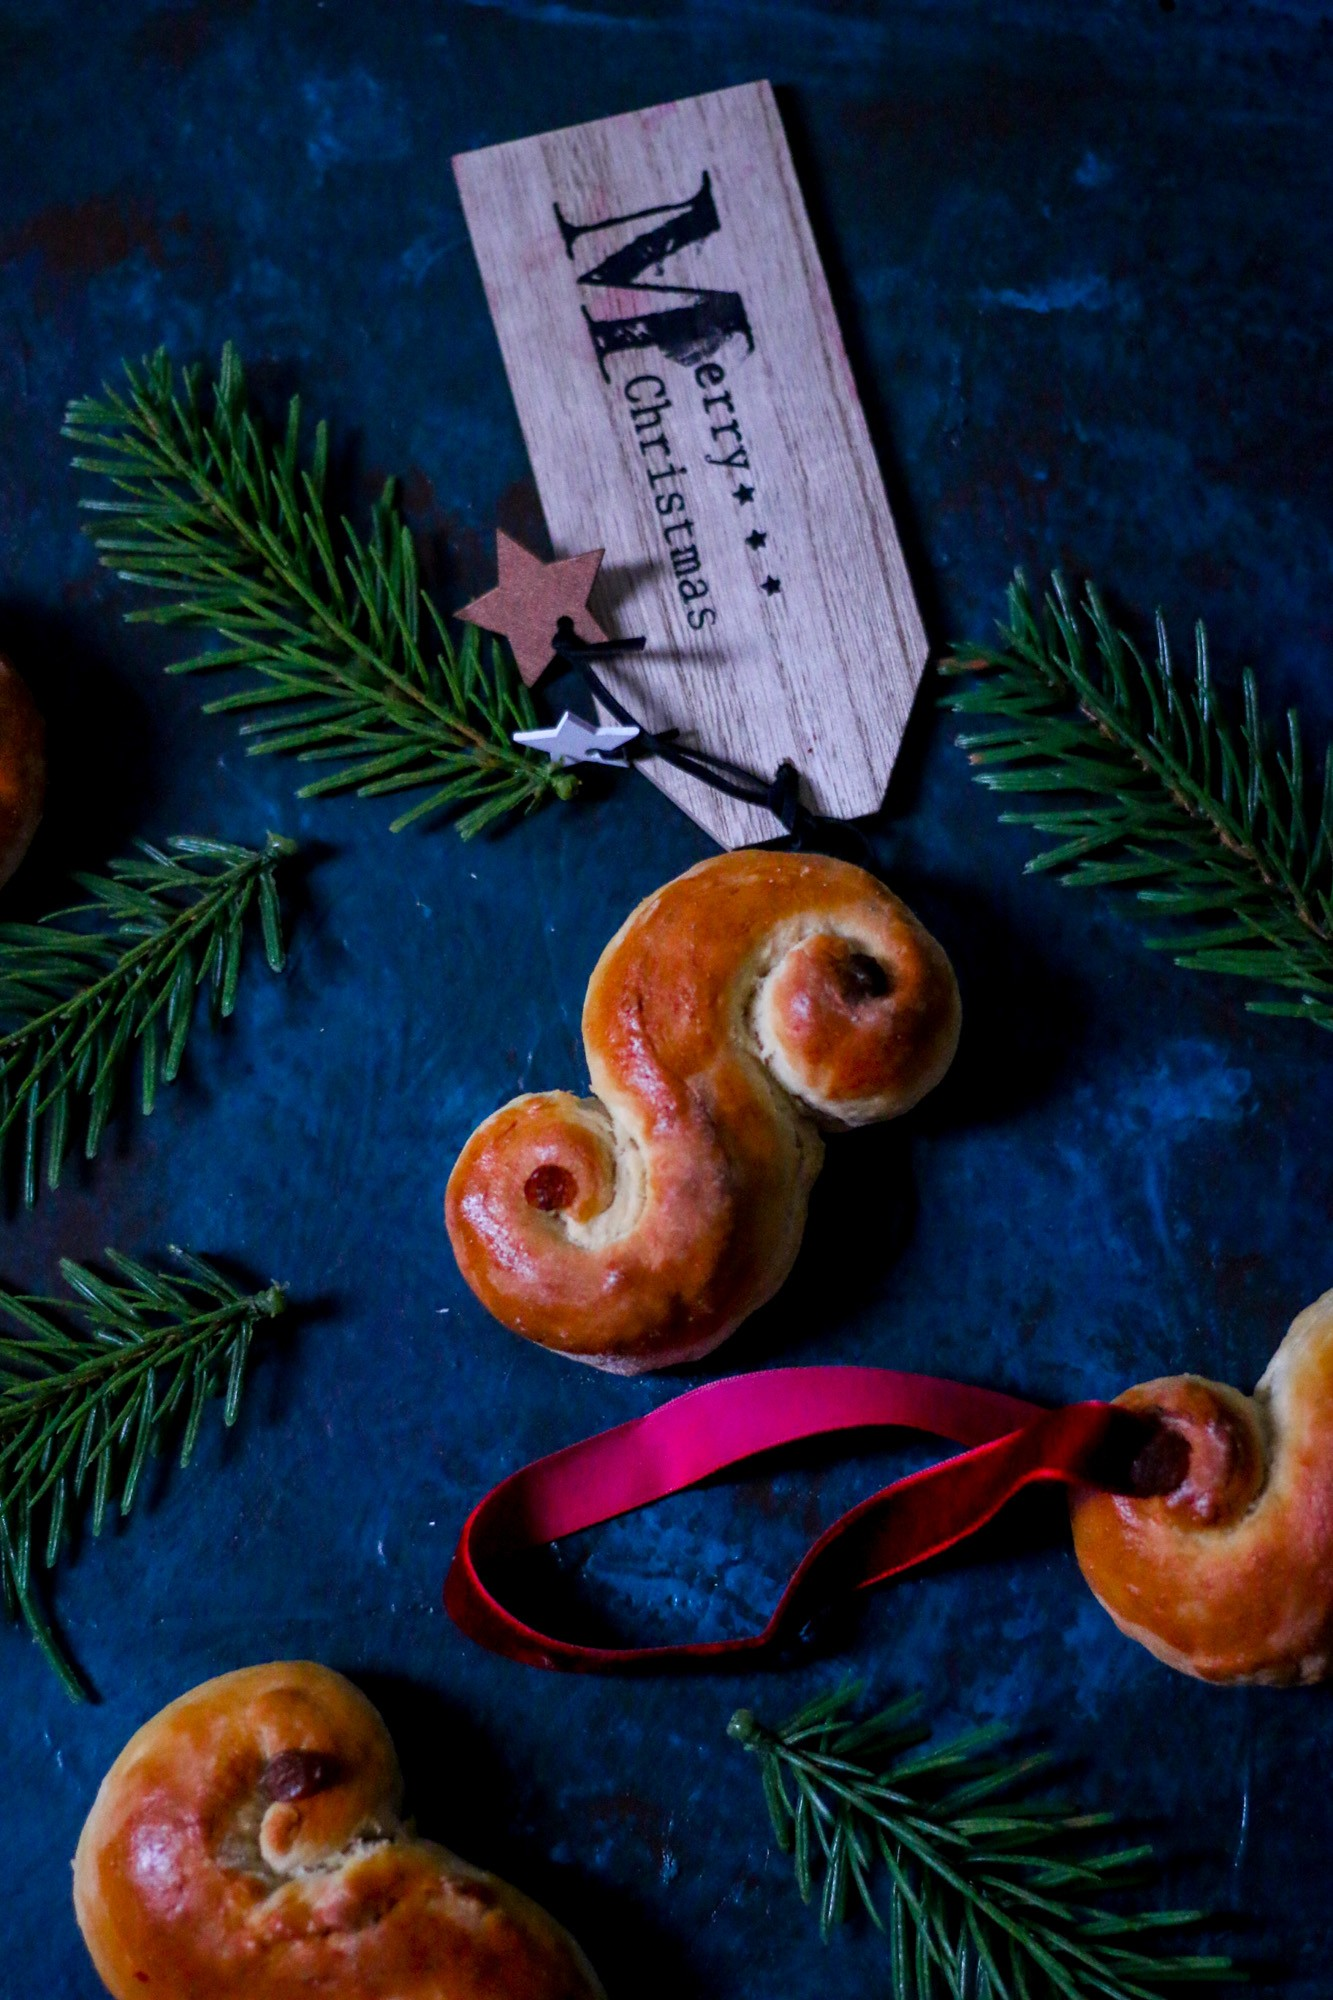 lussekatter-st-lucia-saffron-buns-christmas-cookbook-melissa-ofoedu-photography-for-a-sweet-point-of-view-7-von-1